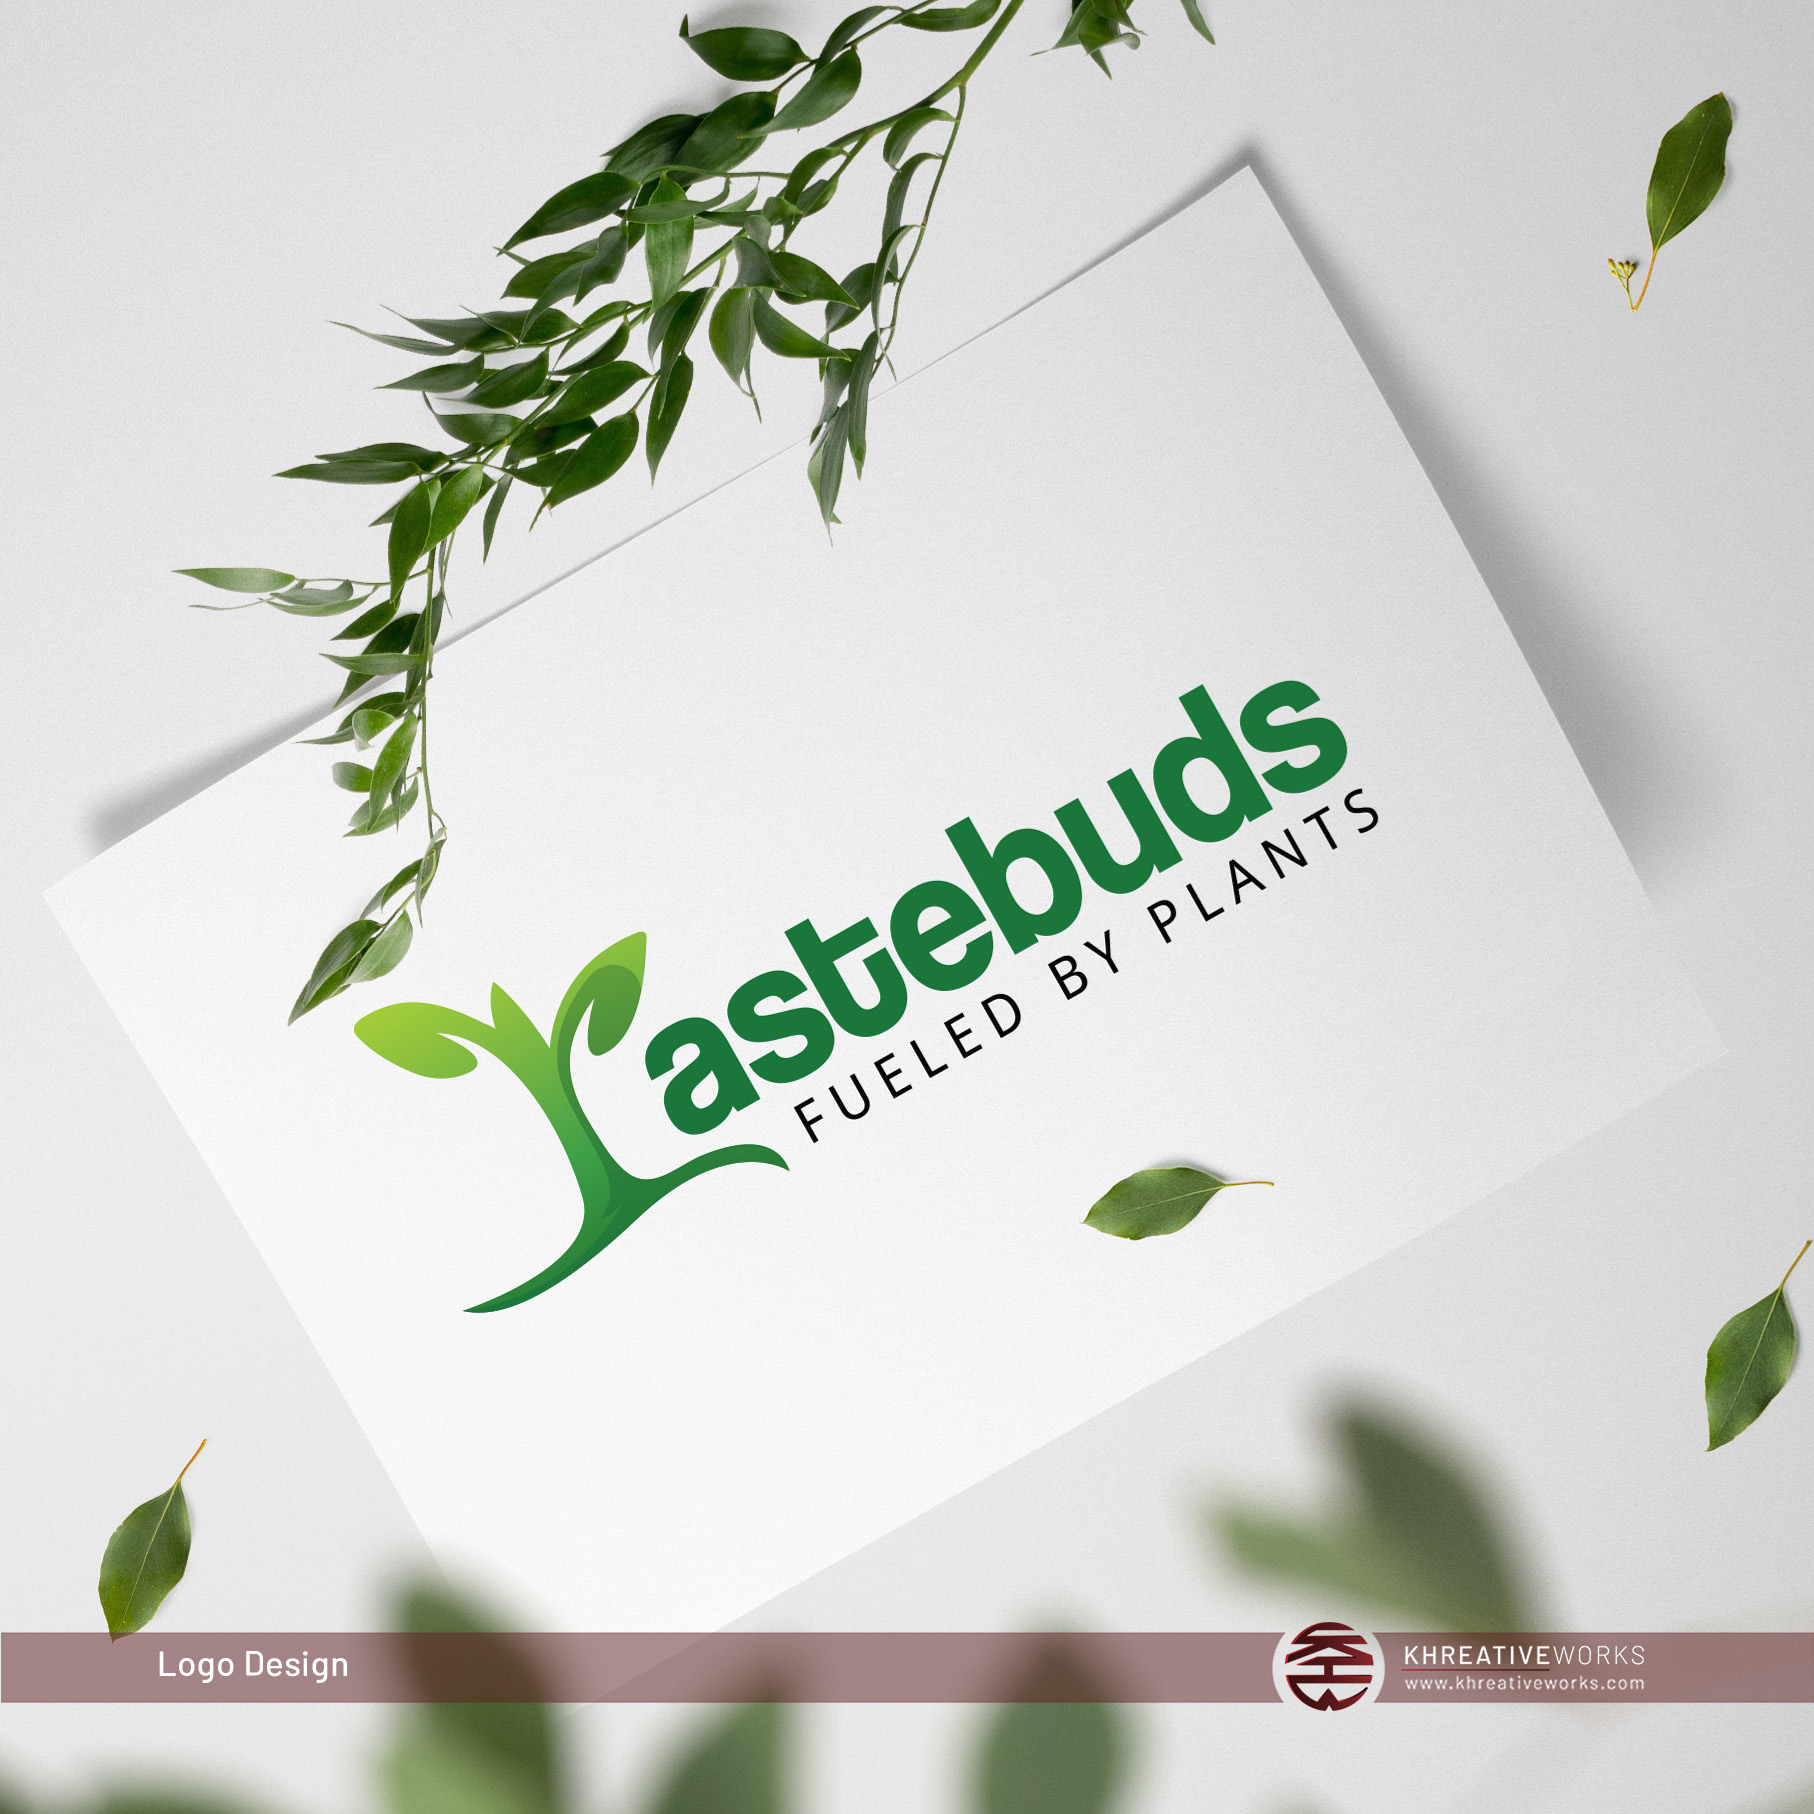 Logo Design for Tastebuds Fueled by Plan